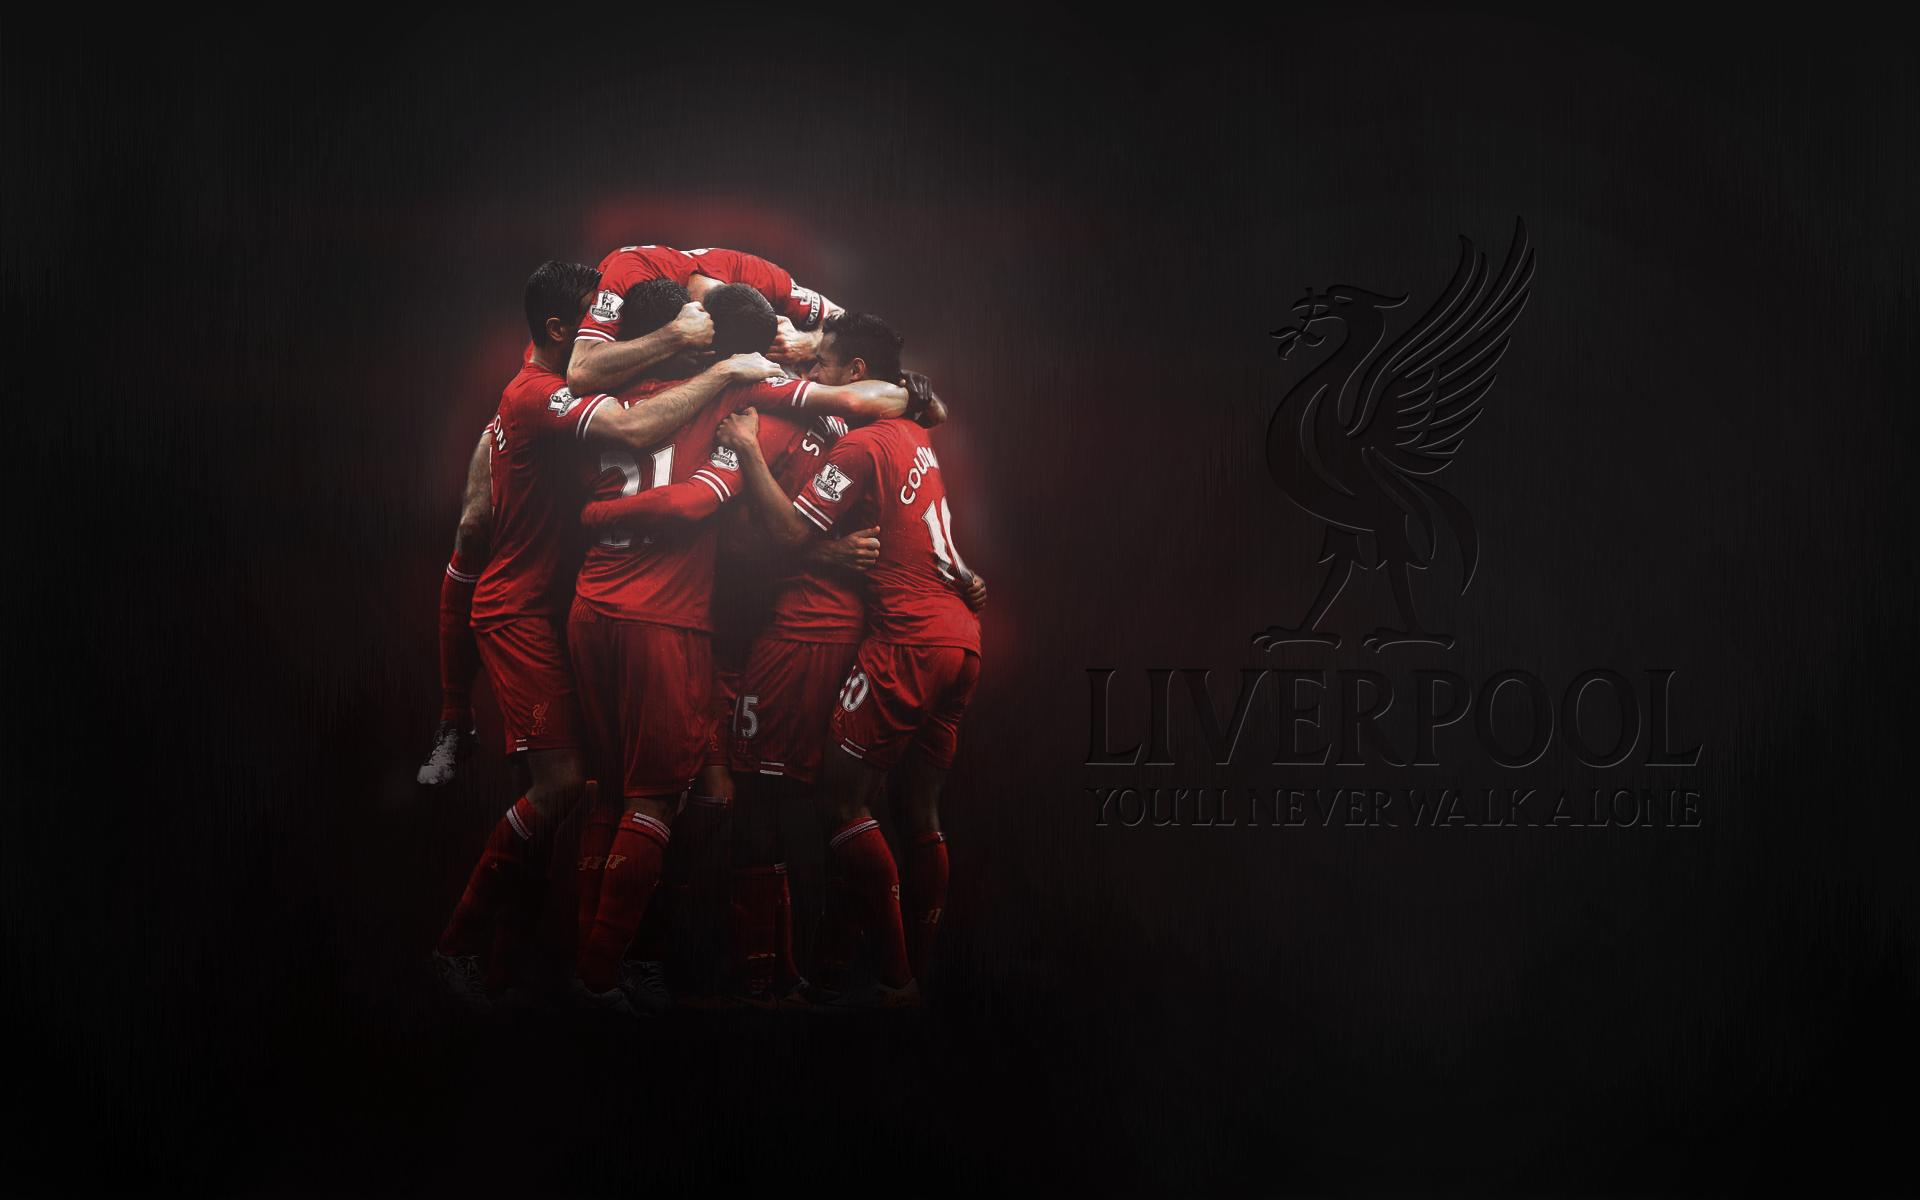 liverpool wallpaper 2015 - wallpapersafari